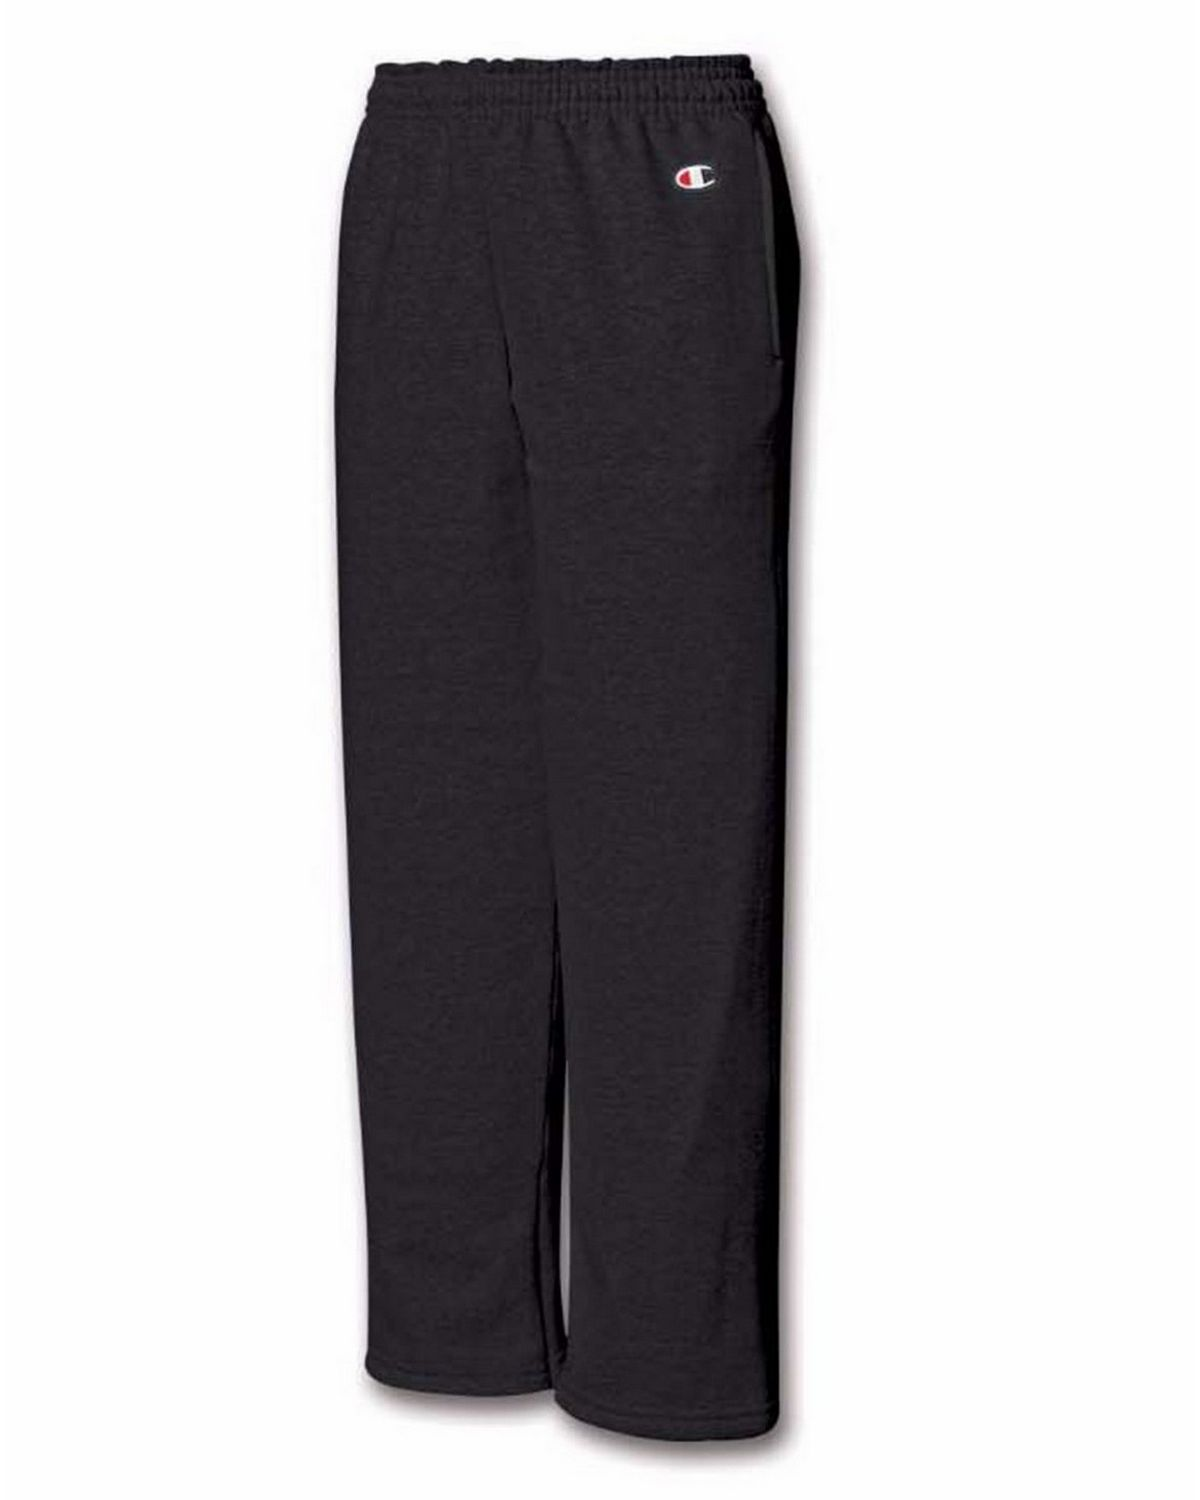 Champion P890 Youth Fleece Open Bottom Pant - Black - S P890